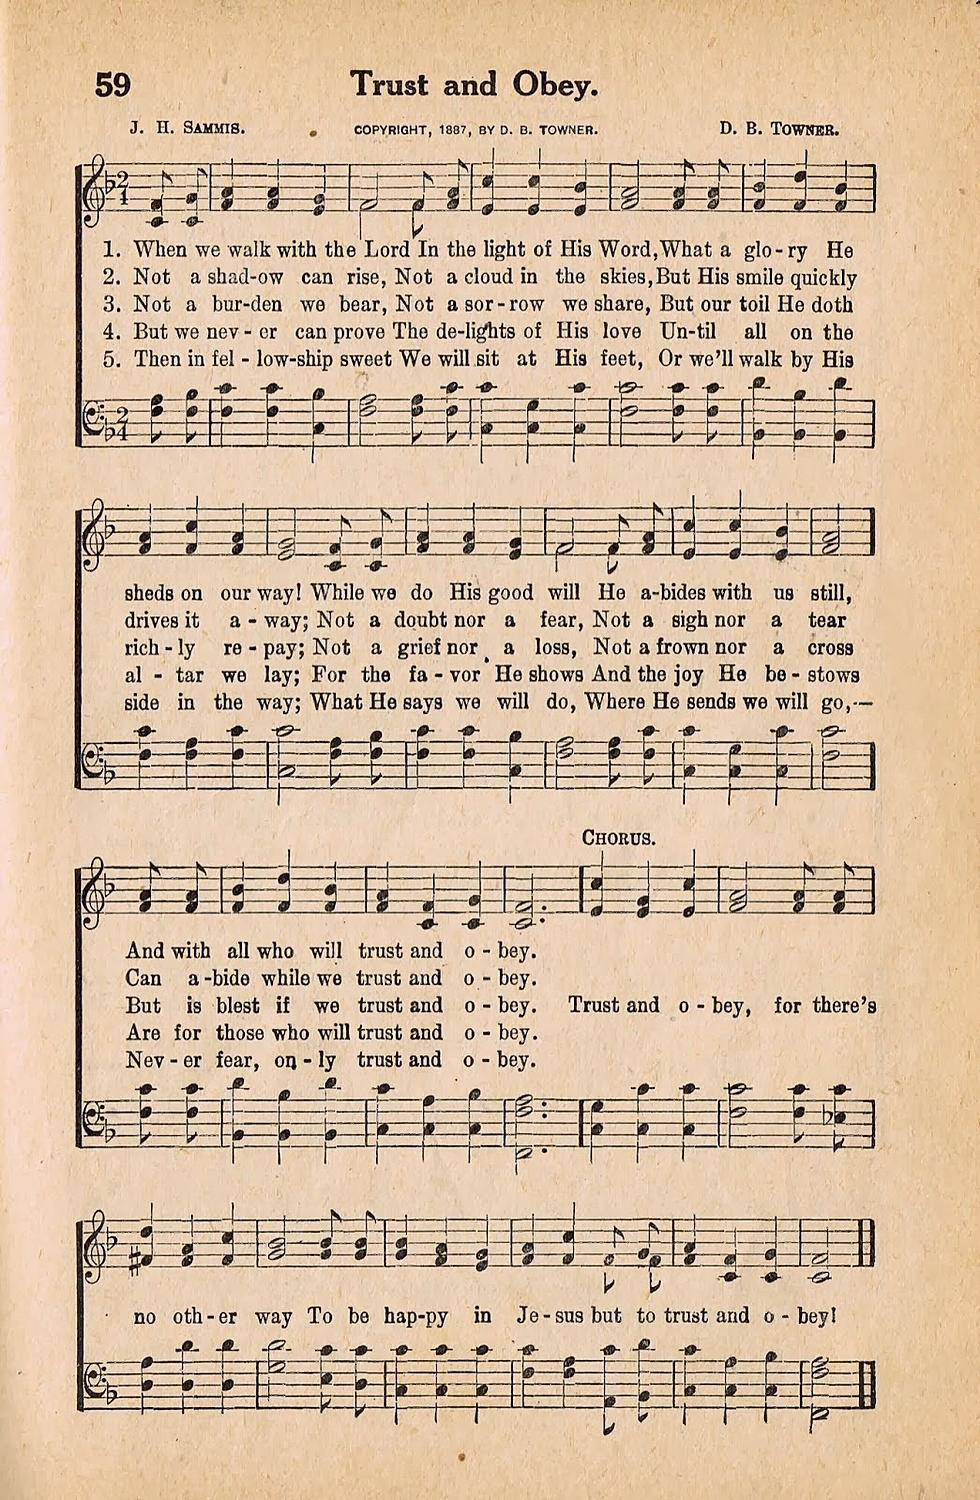 Blind Gospel Song Writers Wrote for Over 8,000 Of Your Fav Hyms